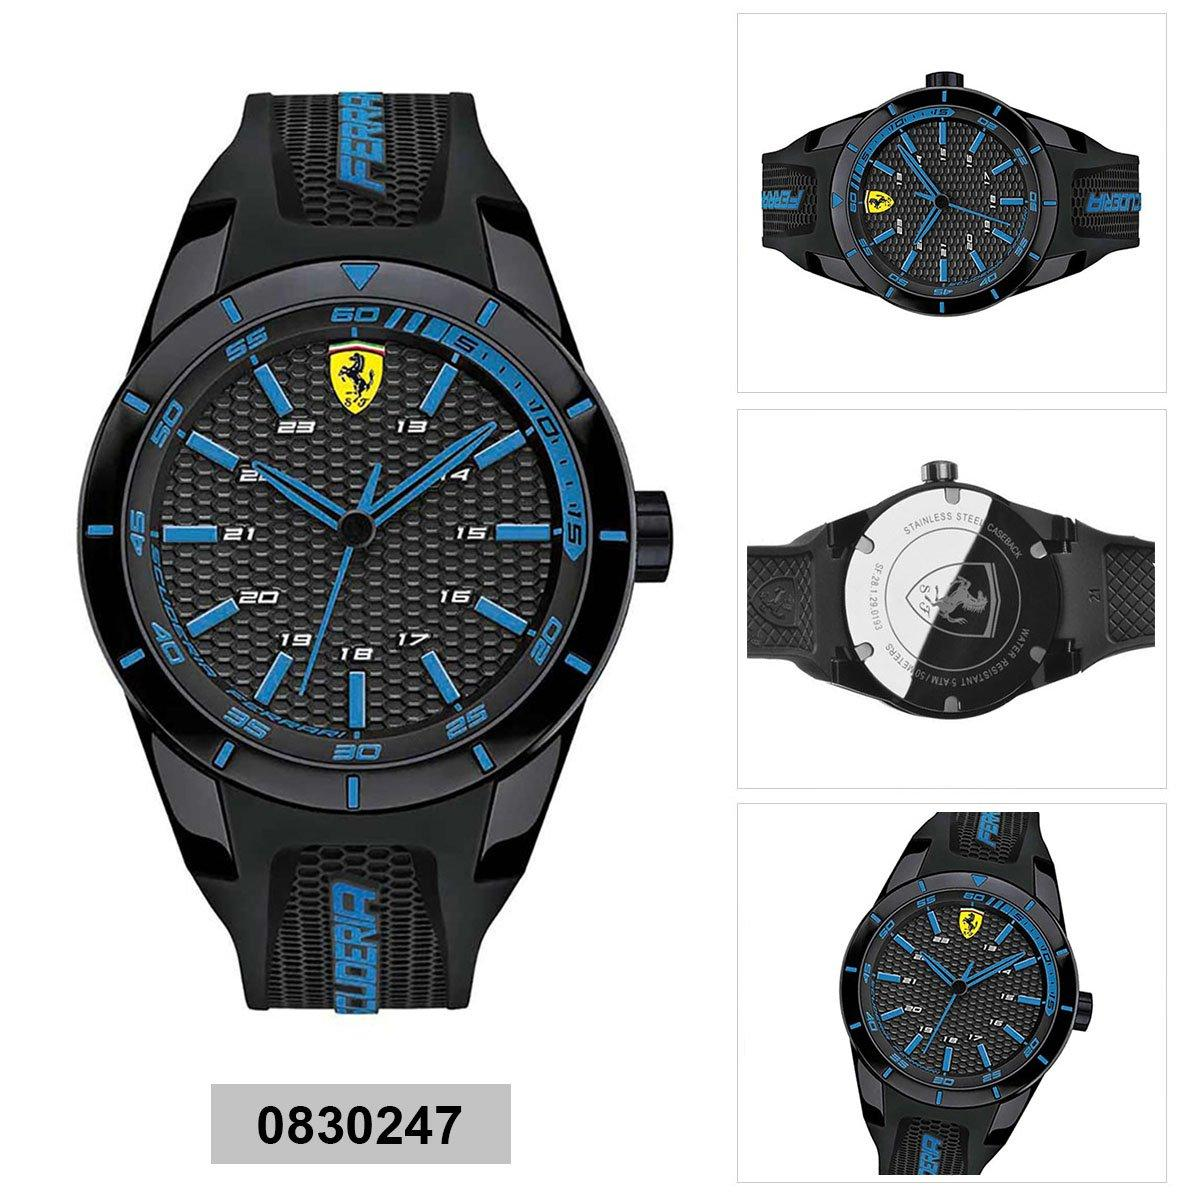 How Do I Get Ferrari Watch Redrev Black Plastic Case Rubber Strap Mens 0830247